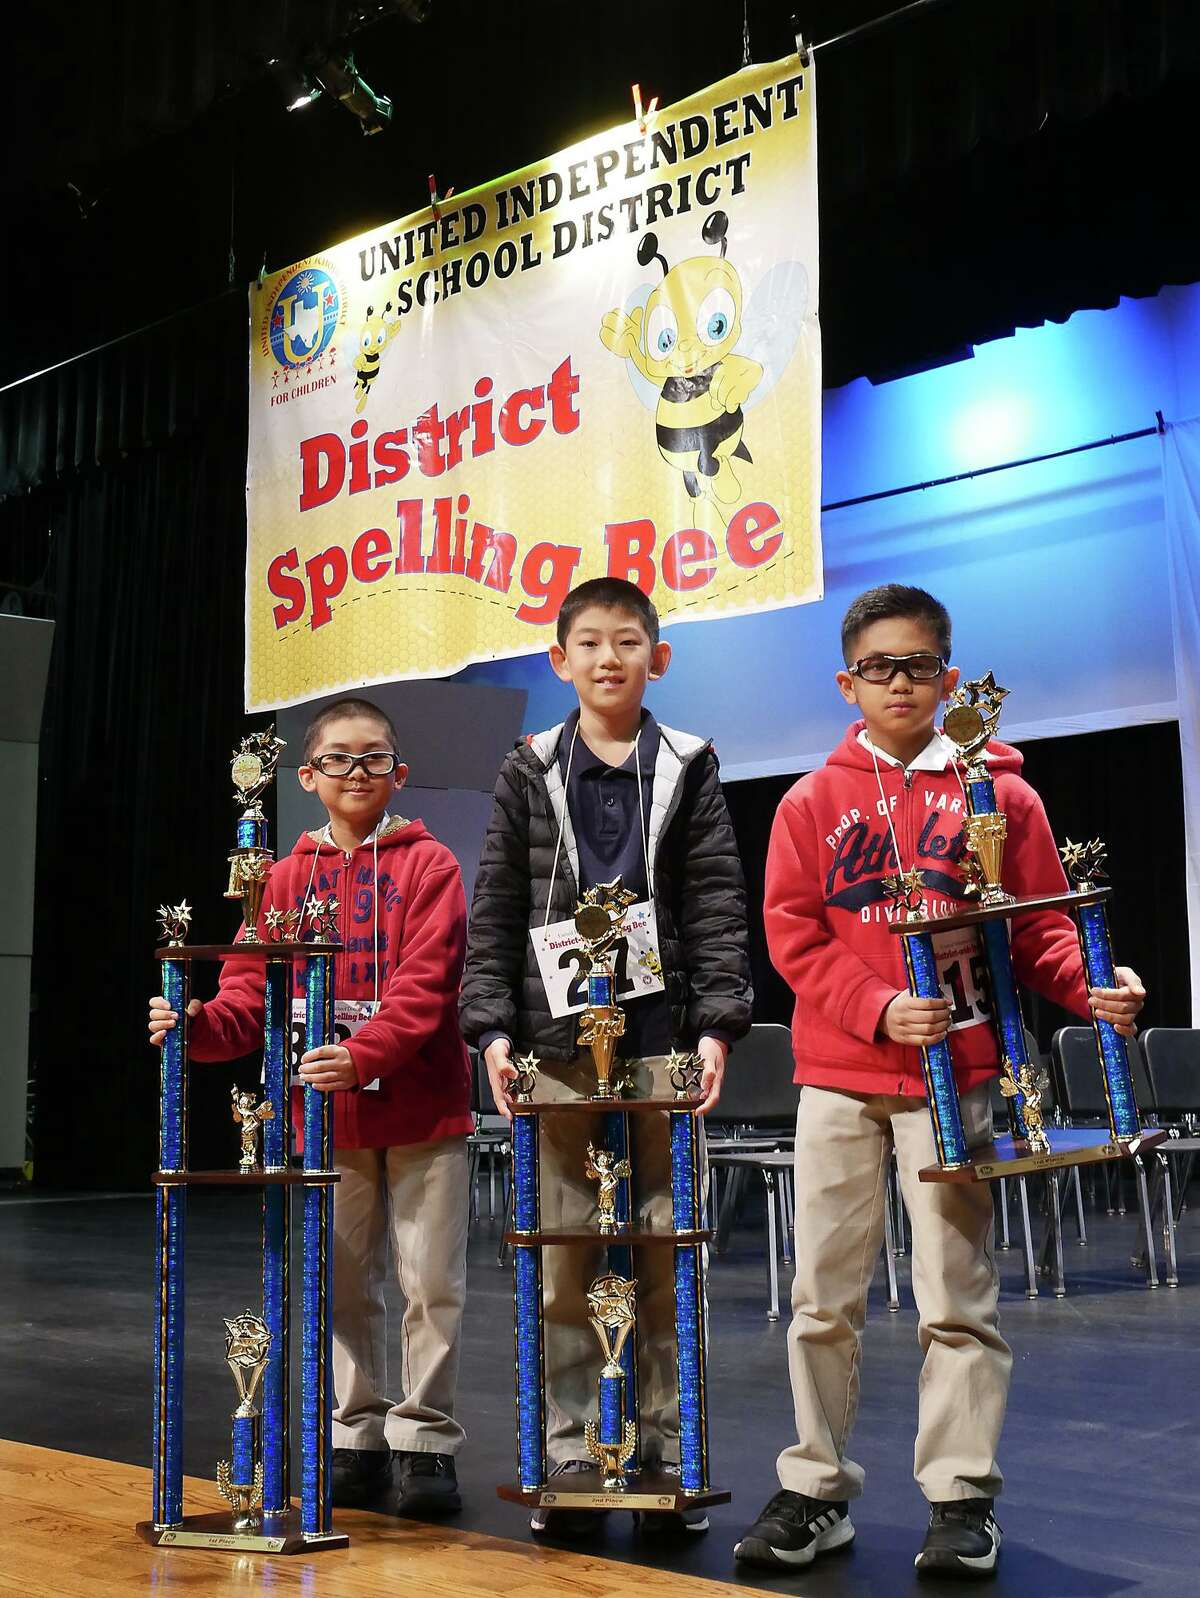 Lamar Bruni Vergara Middle School 6th grade student Emmanuel Rimocal holds the first place trophy he won at the United ISD District Spelling Bee, Thursday, January 31, 2019 at the UISD Student Activity Complex Auditorium. This is Rimocal's second victory at the district level. He was competing against his younger brother Nathaniel, a 4th grade student at Kennedy-Zapata Elementary, who finished in third place.